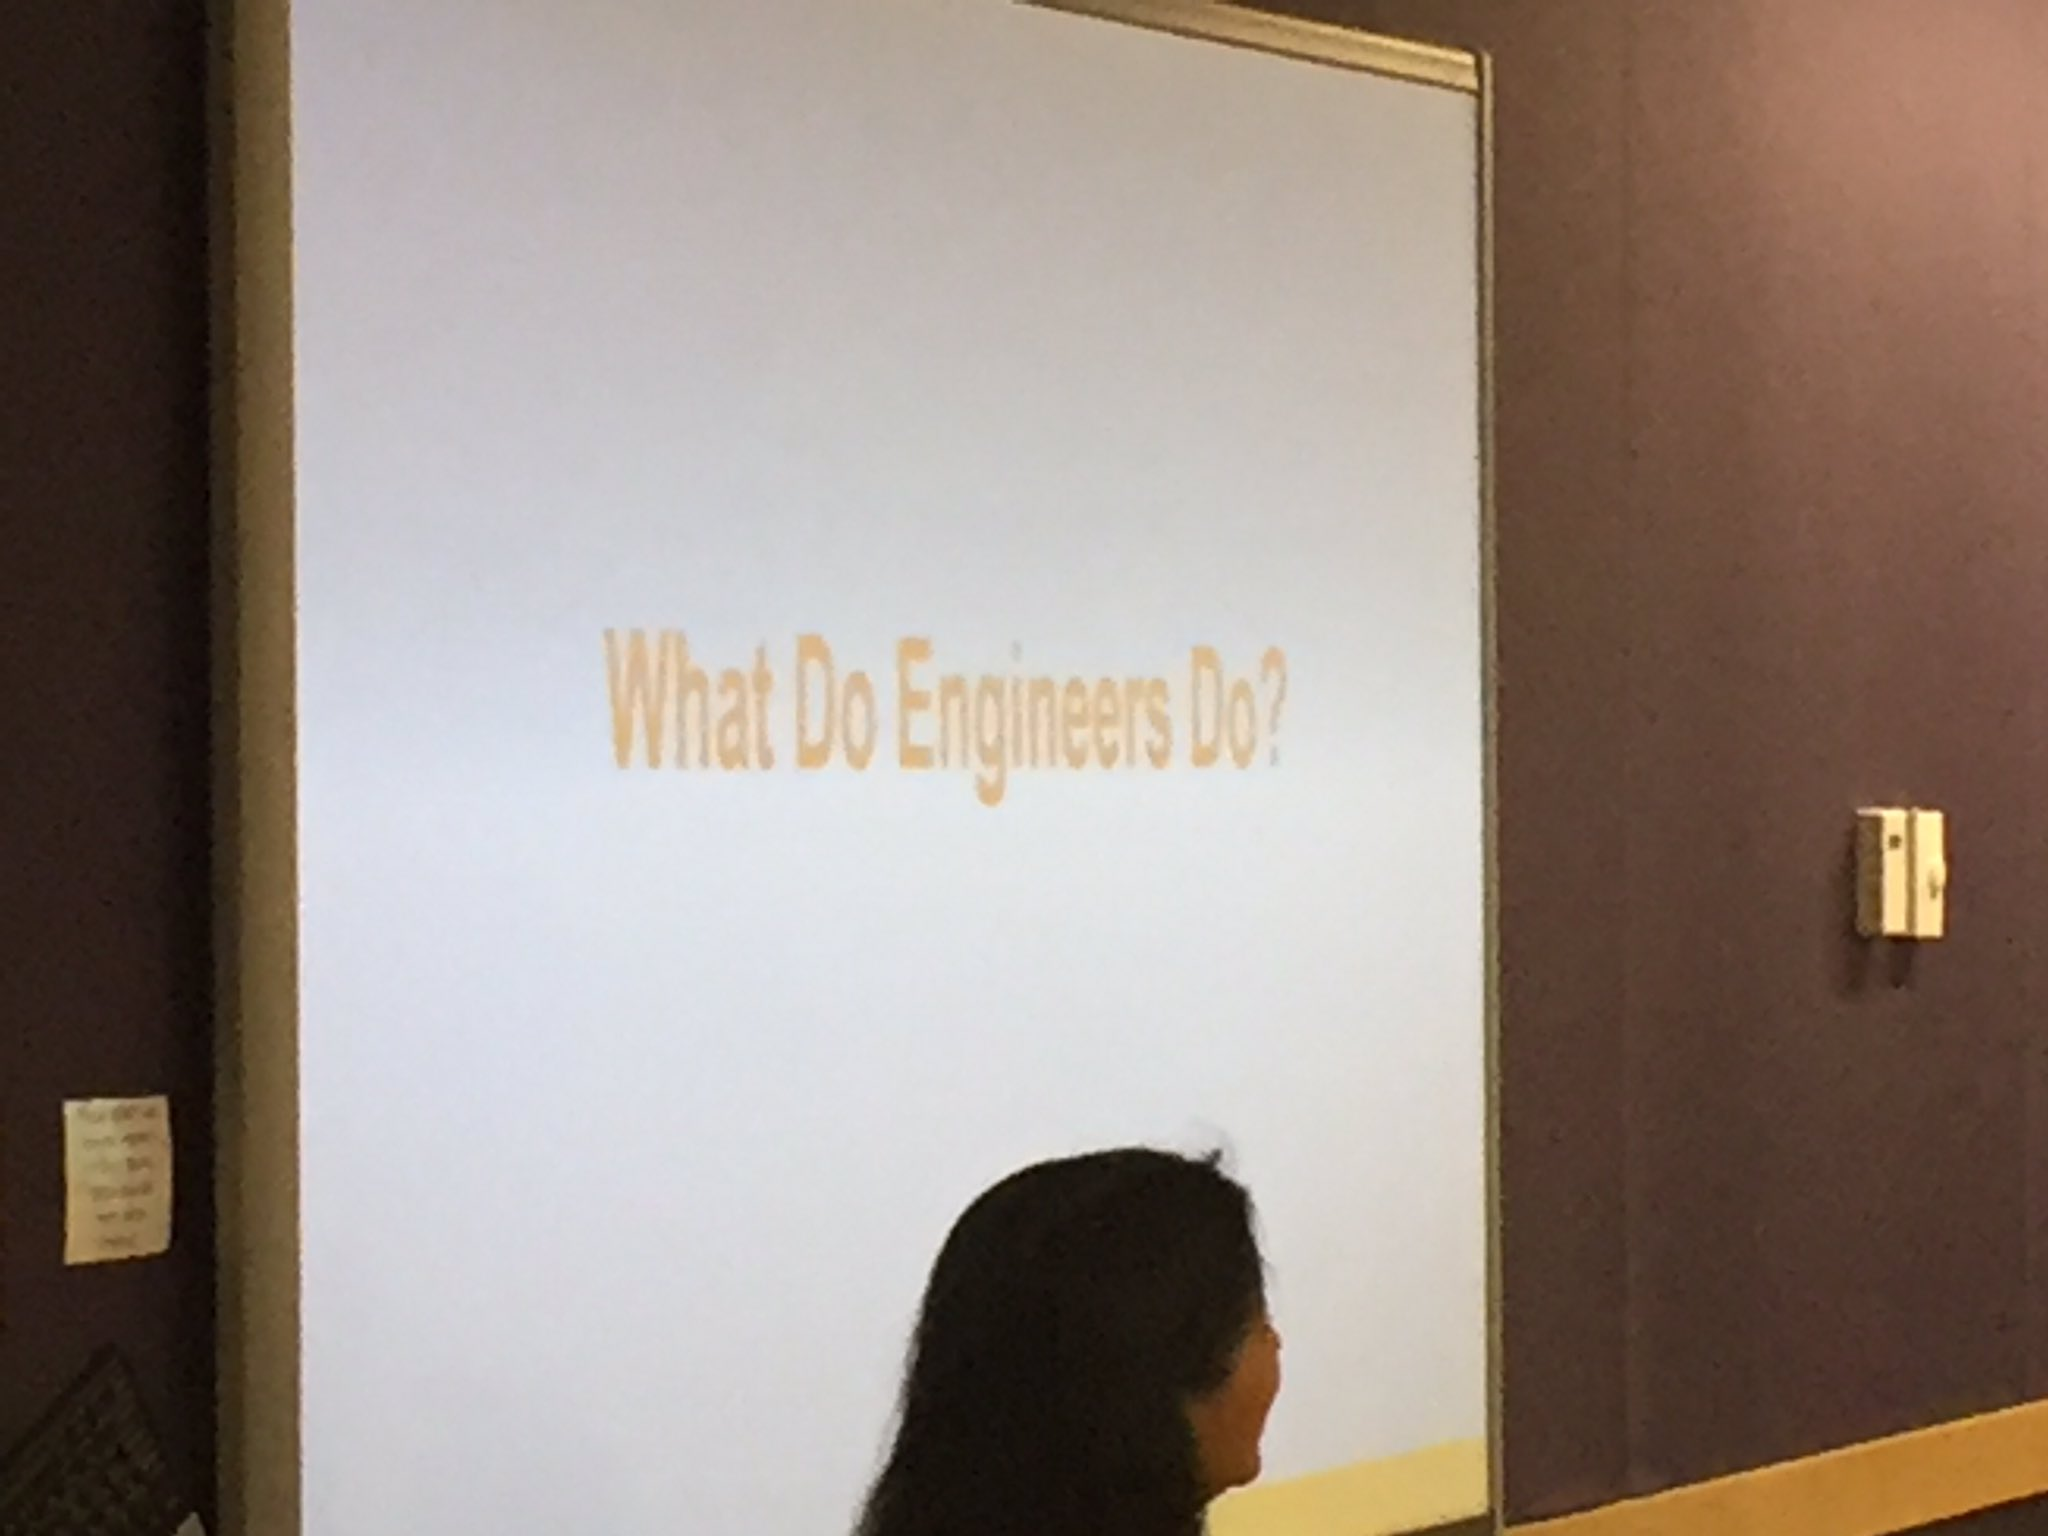 Million dollar question- what do engineers do? Follow to find out! #EngineeringFellows #QuestionOfTheDay https://t.co/Thhv9JK8b1